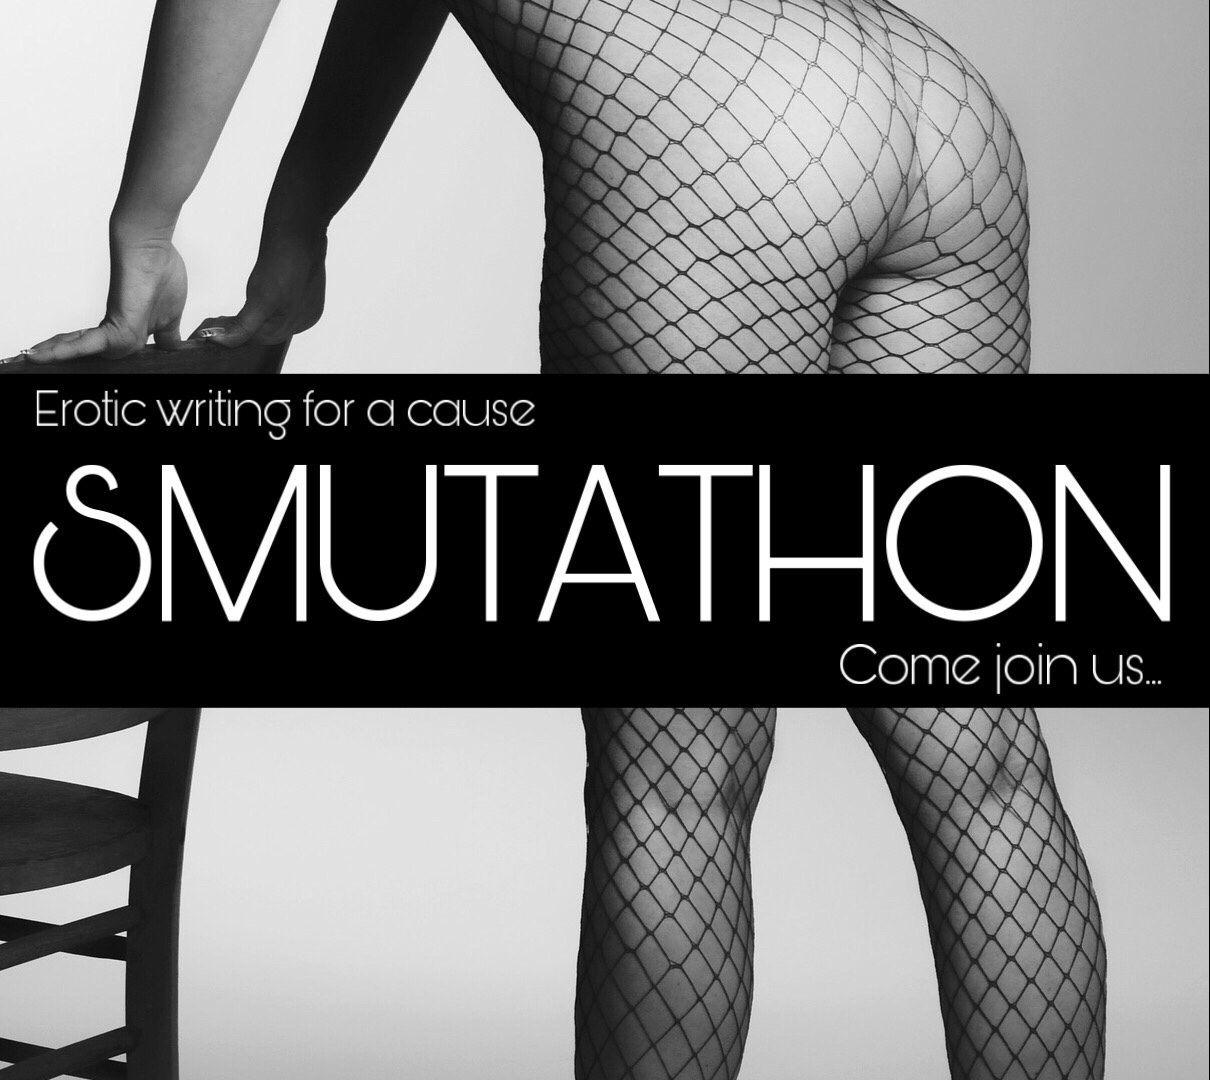 The Smutathon badge showing a woman's legs in fishnet tights bending over a chair